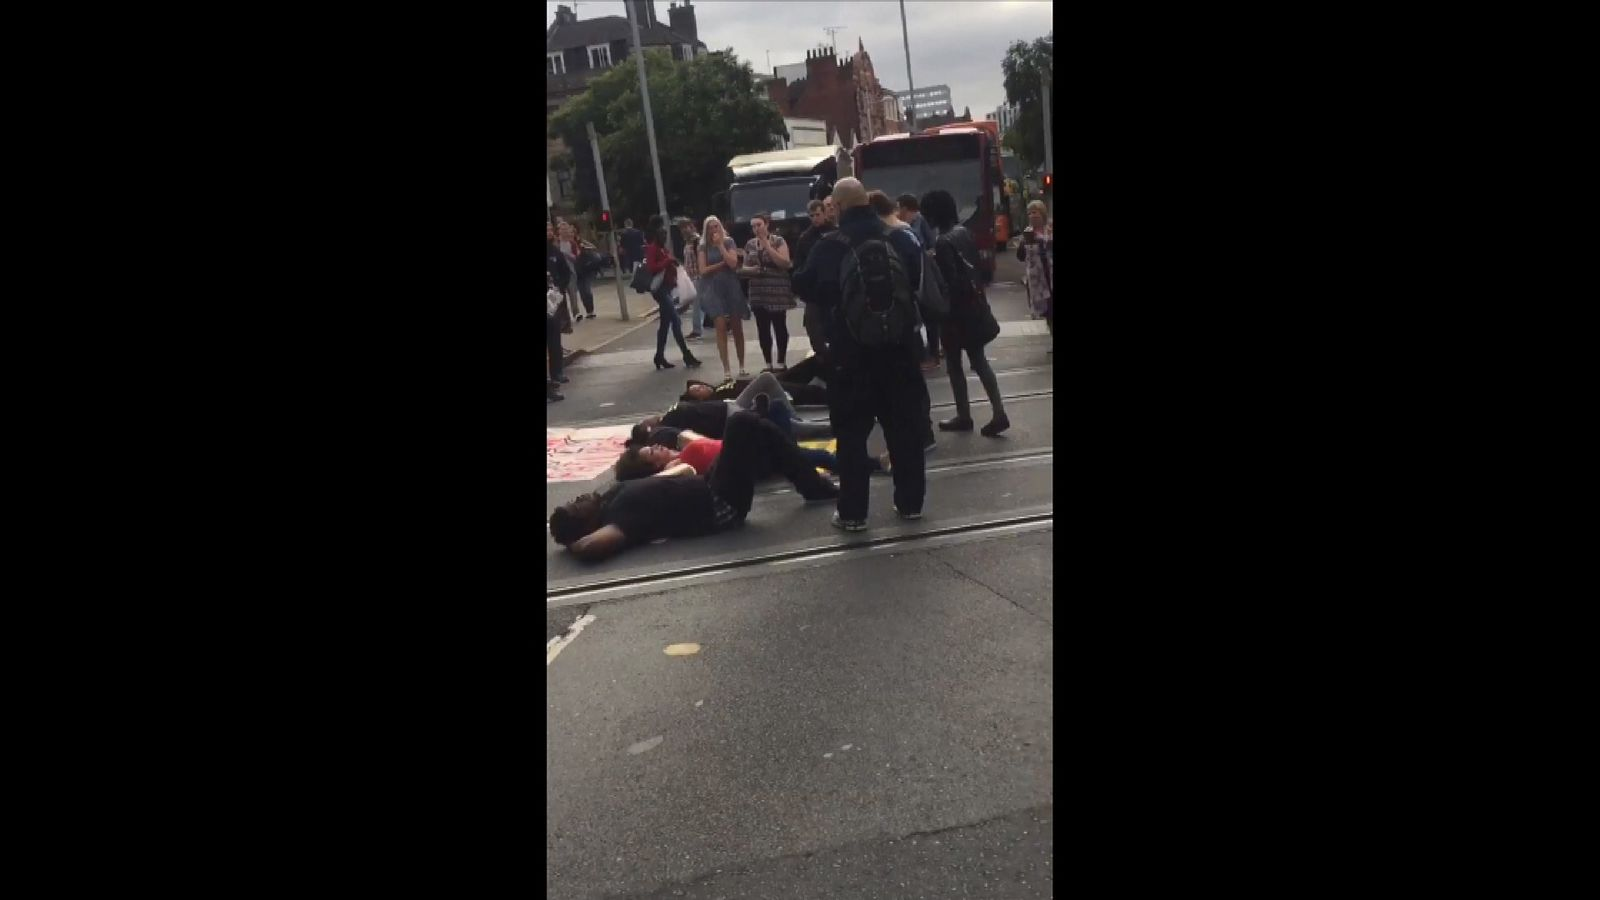 Demonstrators shut down part of the city centre tram and bus network